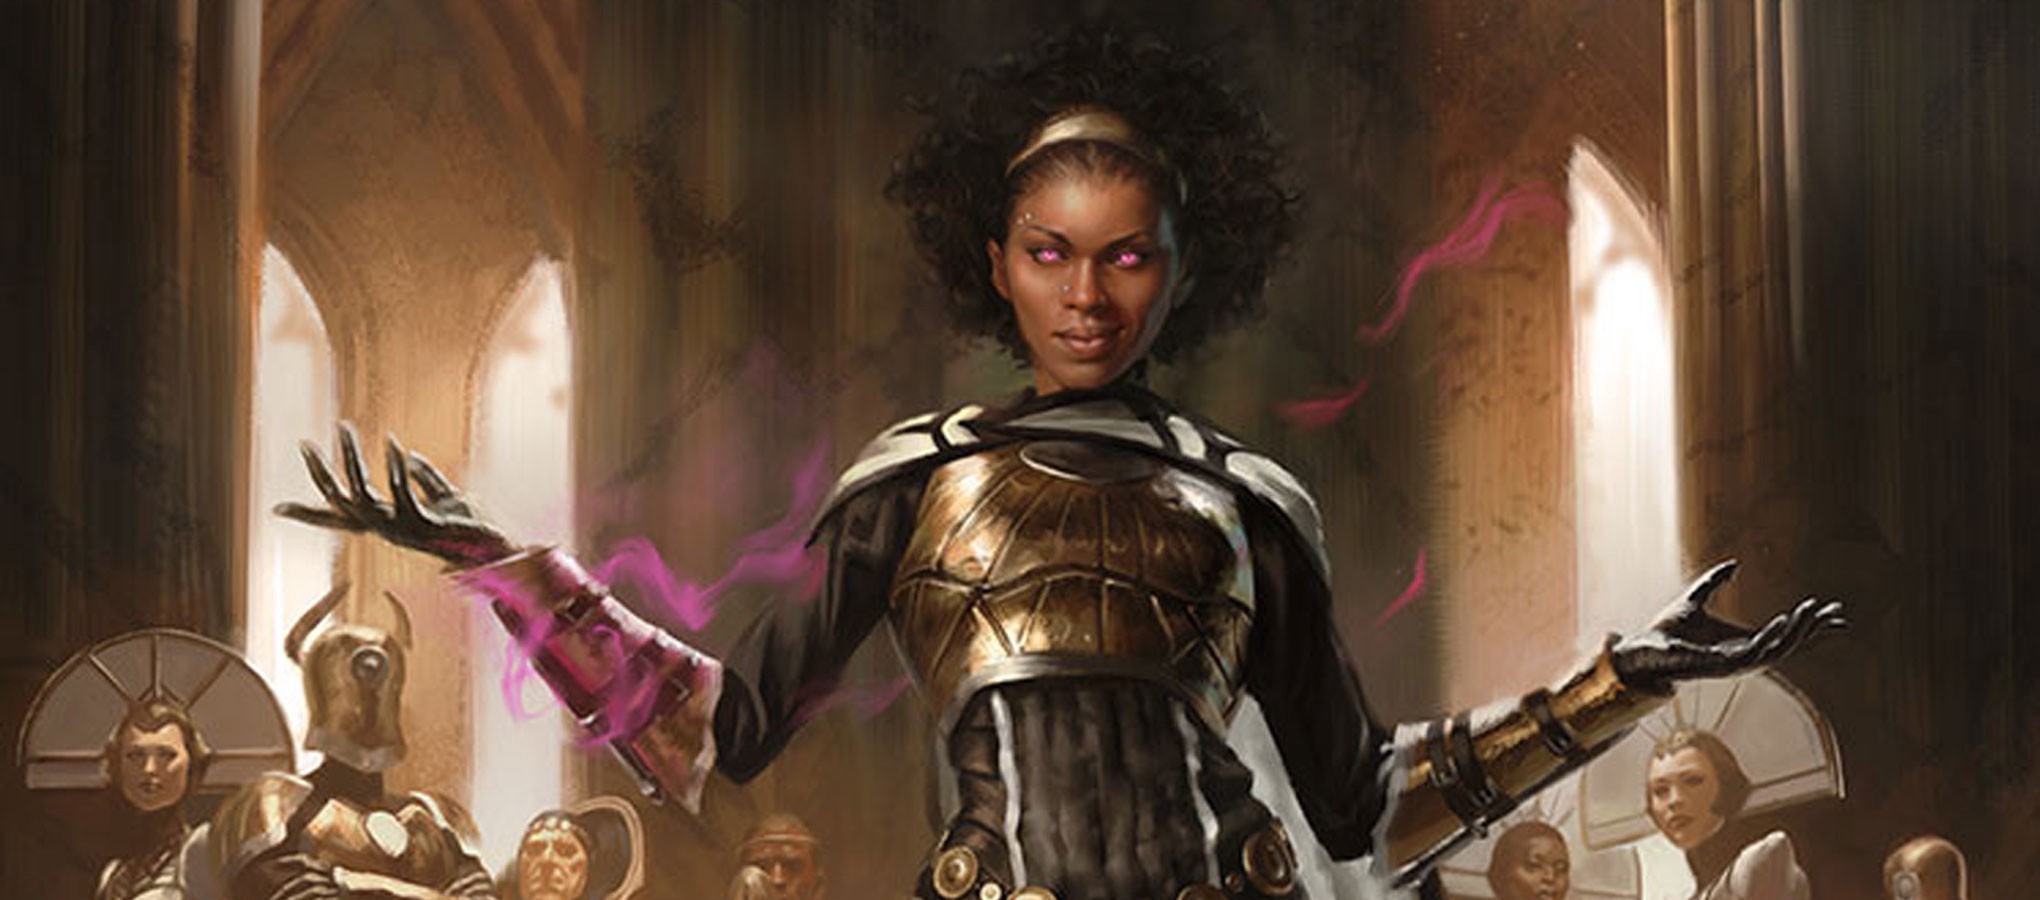 D&D 5E Spellcasting Rules Explained In A Way That Actually